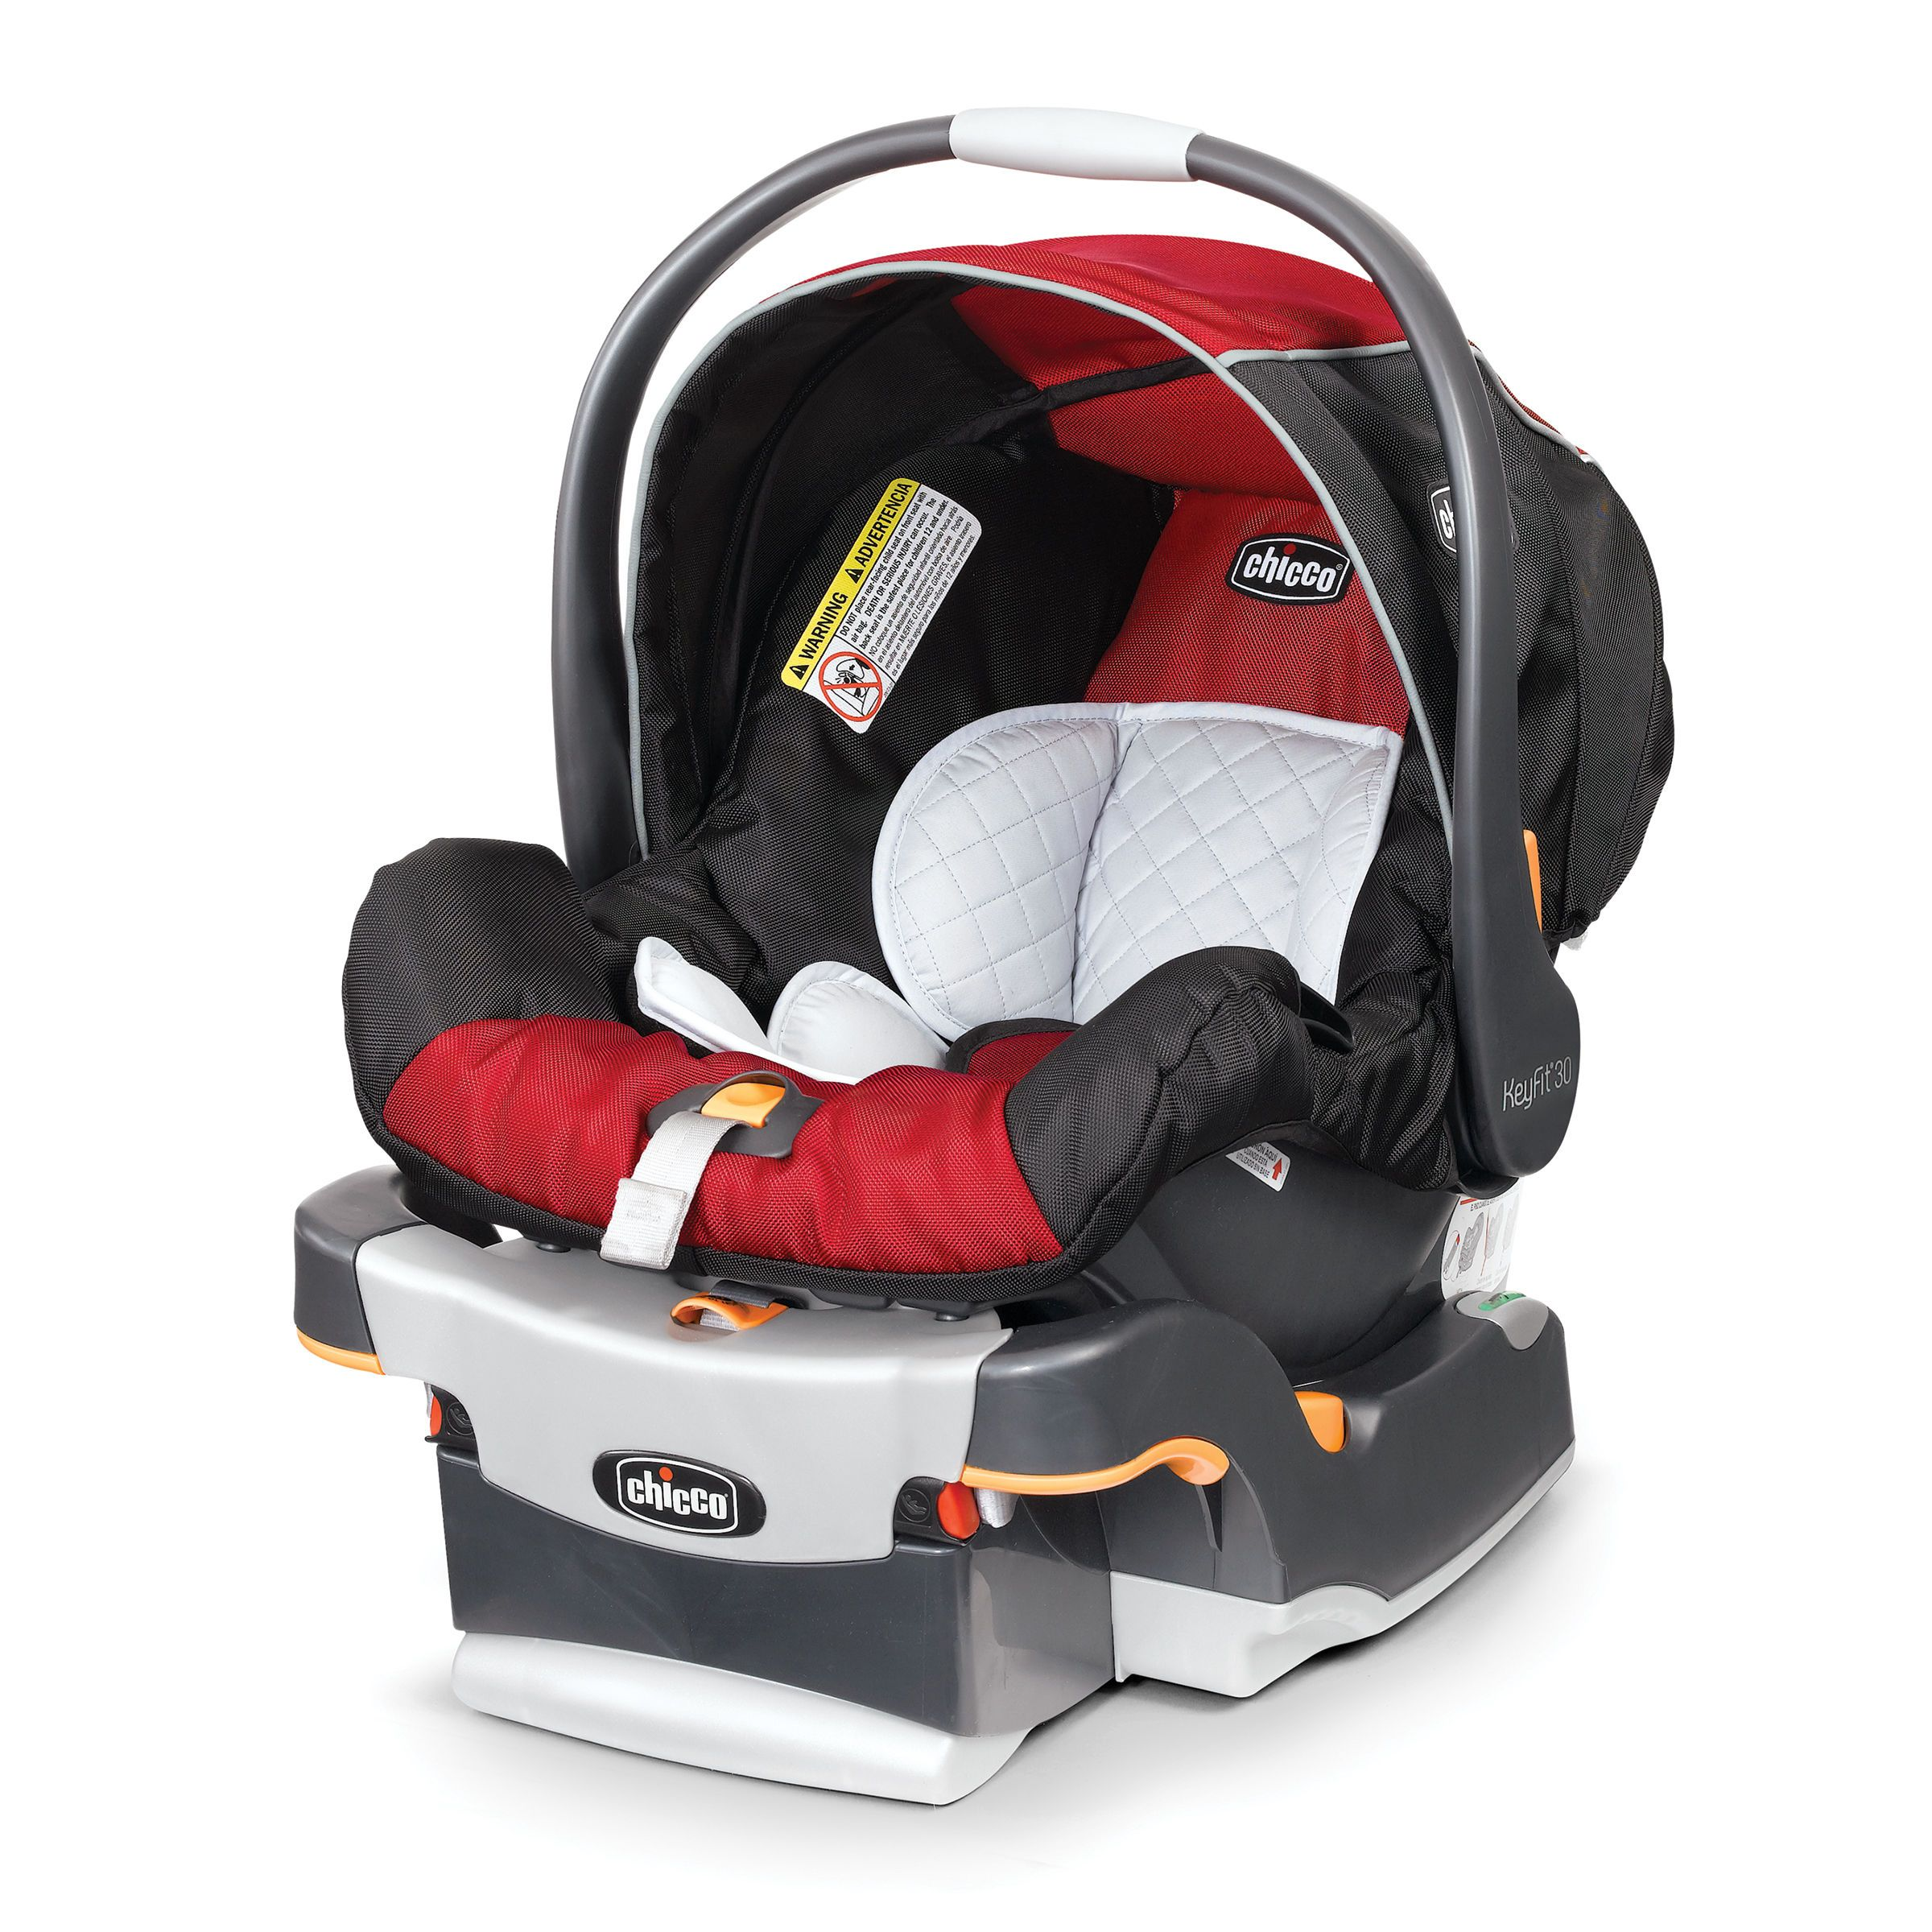 Chicco Fire KeyFit 30 Car Seat With Extra Base For Infants 4 To Pounds Use Travel Systems